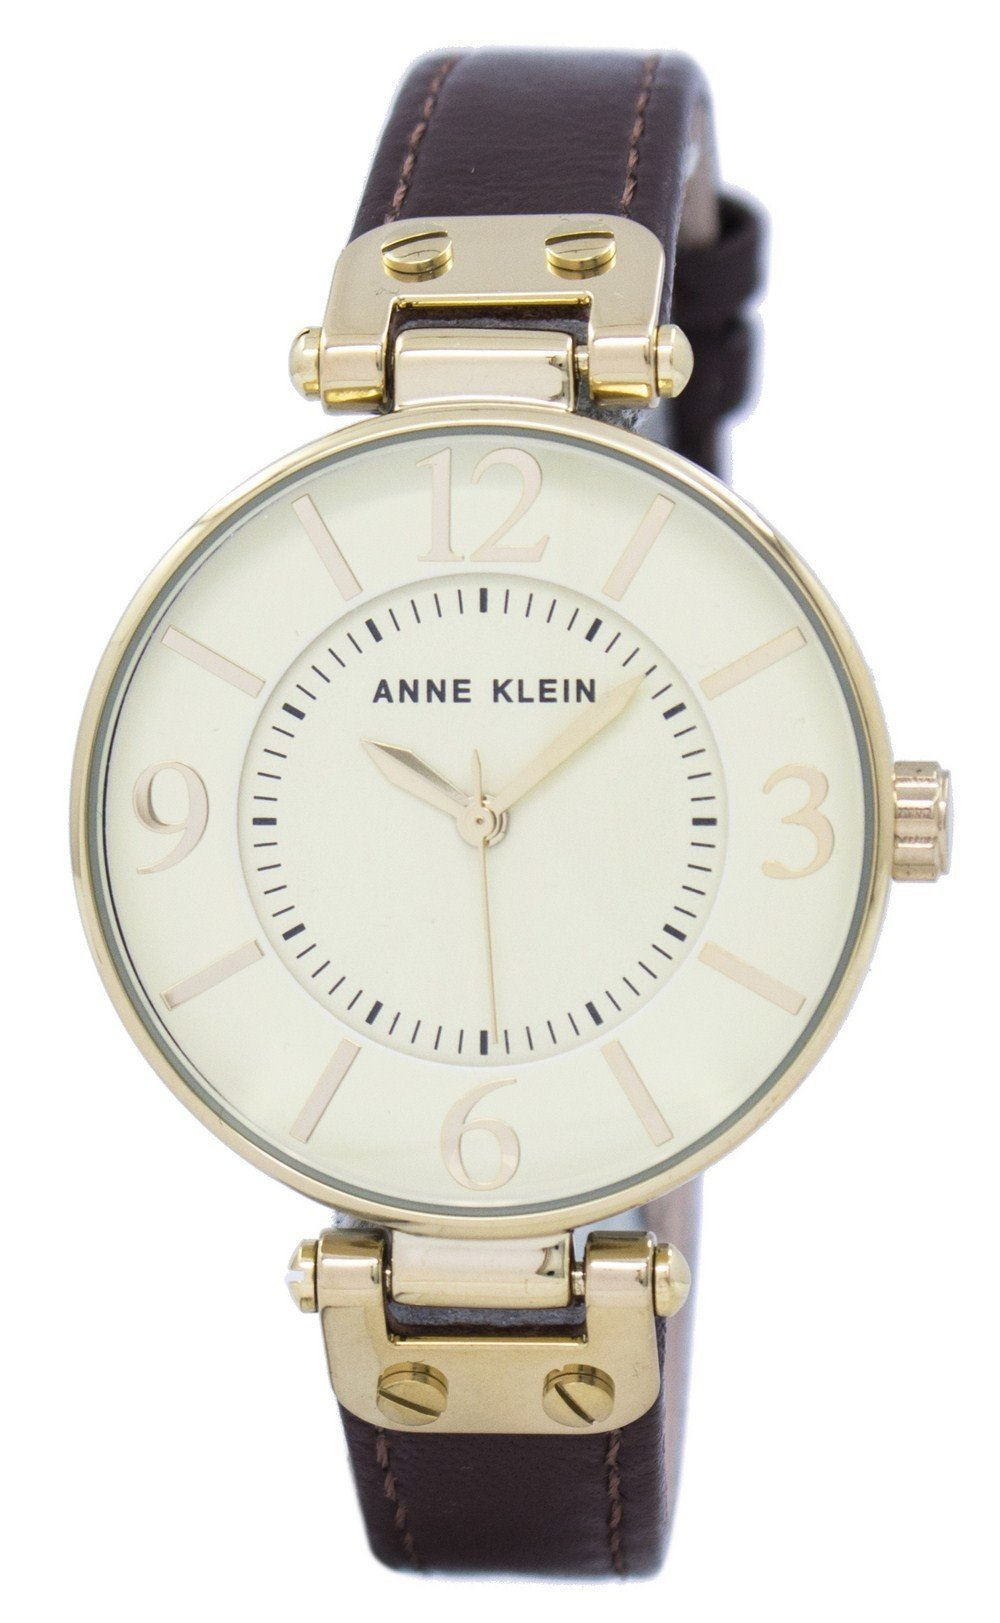 Anne Klein Quartz 9168IVBN Women's Watch